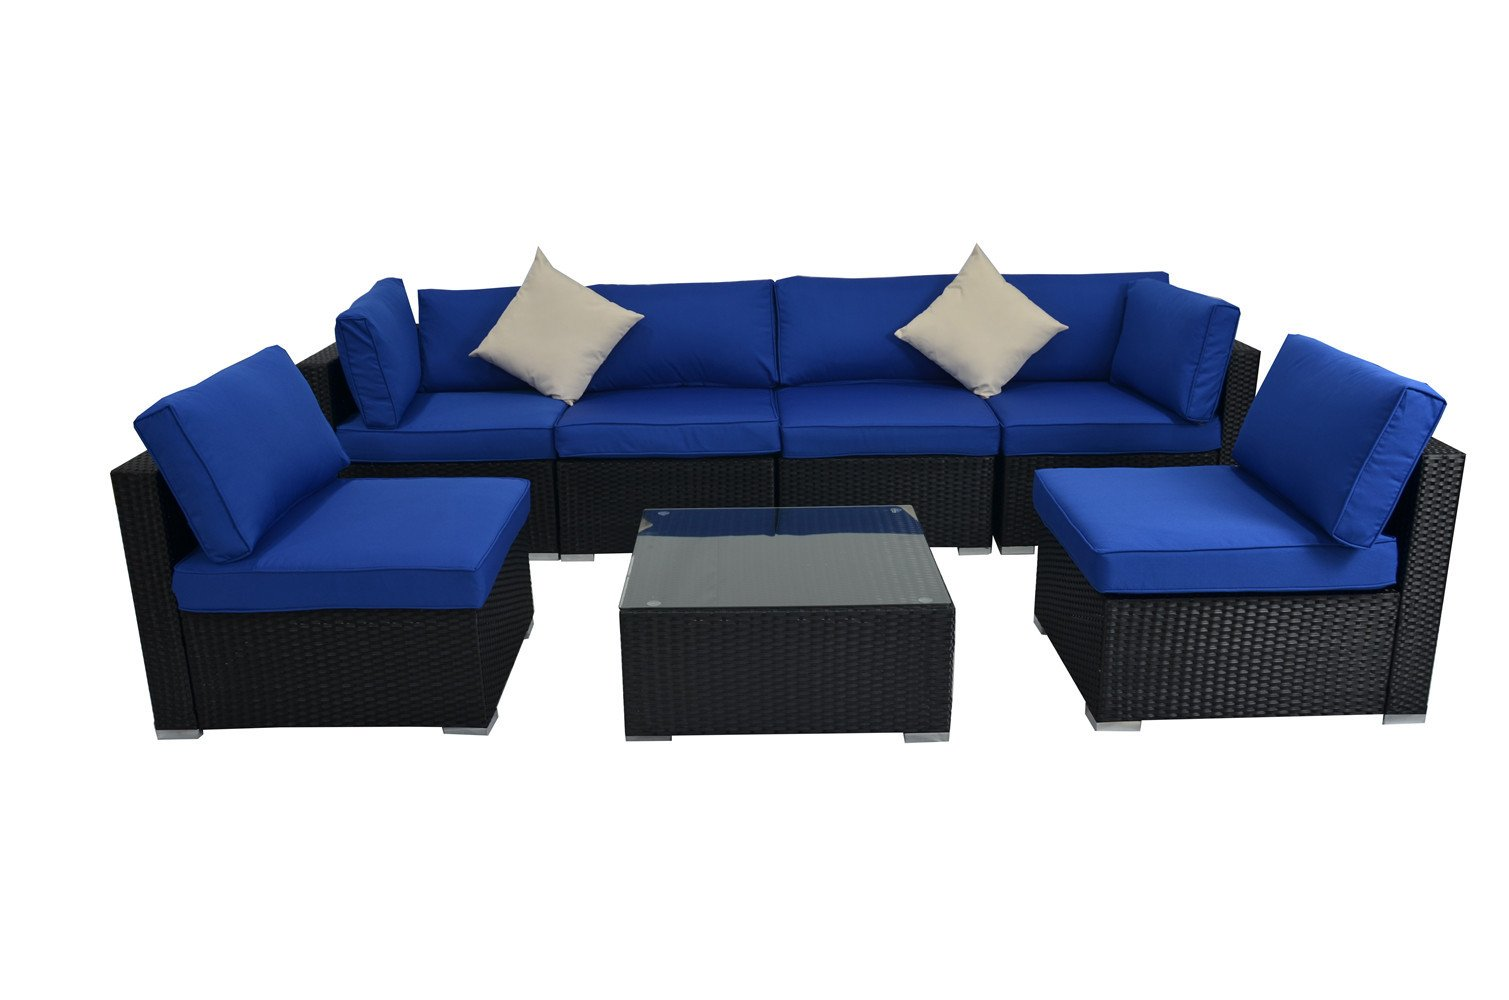 Patio Outdoor Christmas Party Sofa PE Black Rattan Furniture Set 7pcs Garden Wicker Patio Furniture Royal Blue Cushion Sectional Sofa Conversation Sets - Patio Garden Sofa★Appearance style★Sofa have Royal Blue cushions allow for further comfortable and better support while you sit than a traditional cushions, and the Turquoise color contrasts stylishly with the black finish of the resin wicker,Fashion color matching creating a whole new look and feel for your patio Patio Furniture Set★Rearrange to Any Formation★lock them up in any formation adding fun to place your furniture,Provide stylish and comfortable lounging to Conversation Outdoor Rattan Sofa★Easy to Clean★Washable cushion covers made from 250g outdoor water resistant polyester cloth for easy cleanin - patio-furniture, patio, conversation-sets - 61WaMm7m4XL -